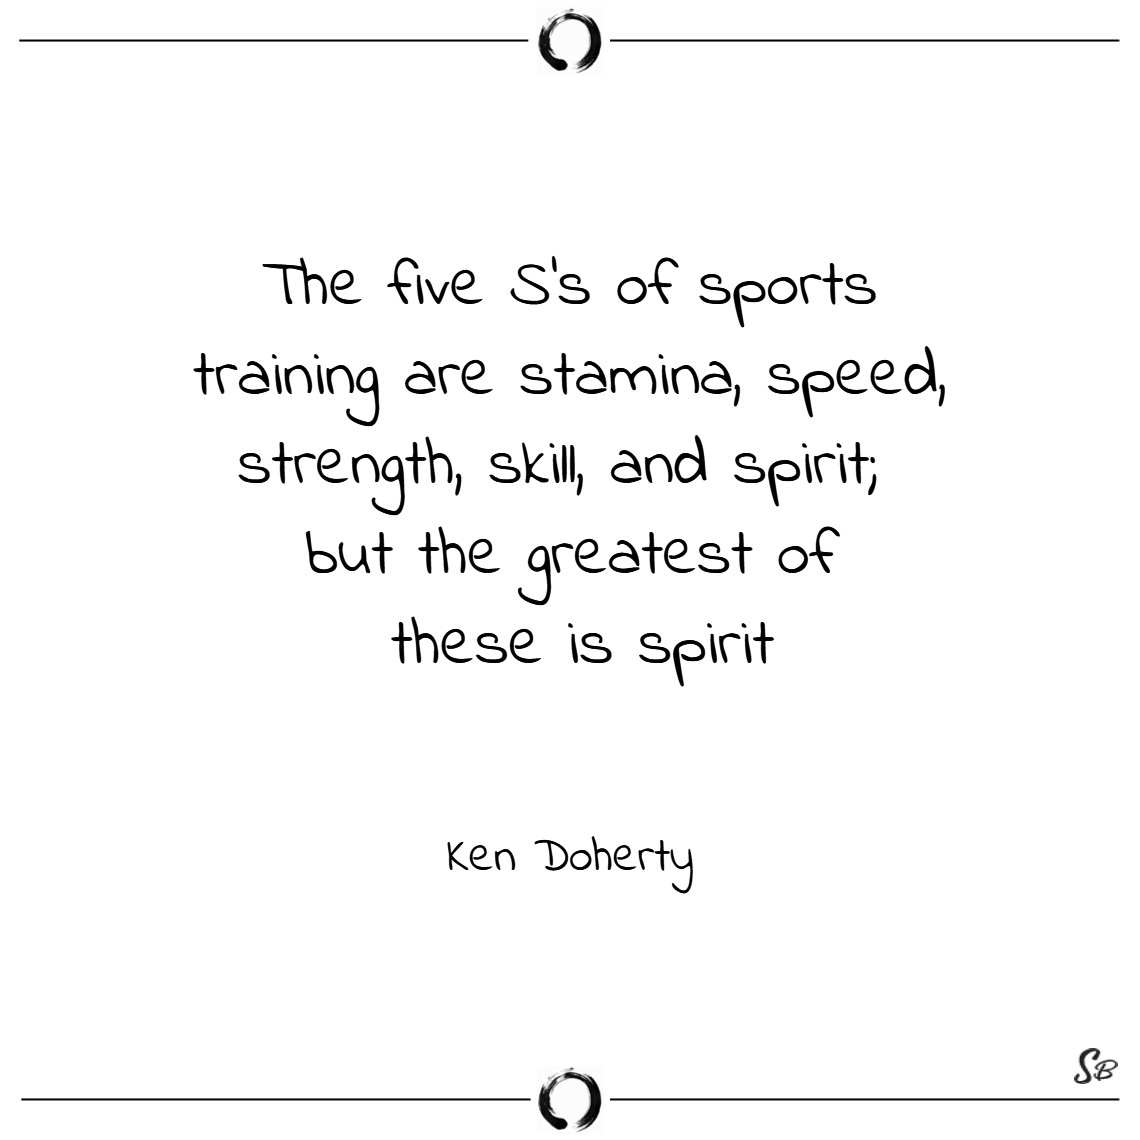 The five s's of sports training are stamina, speed